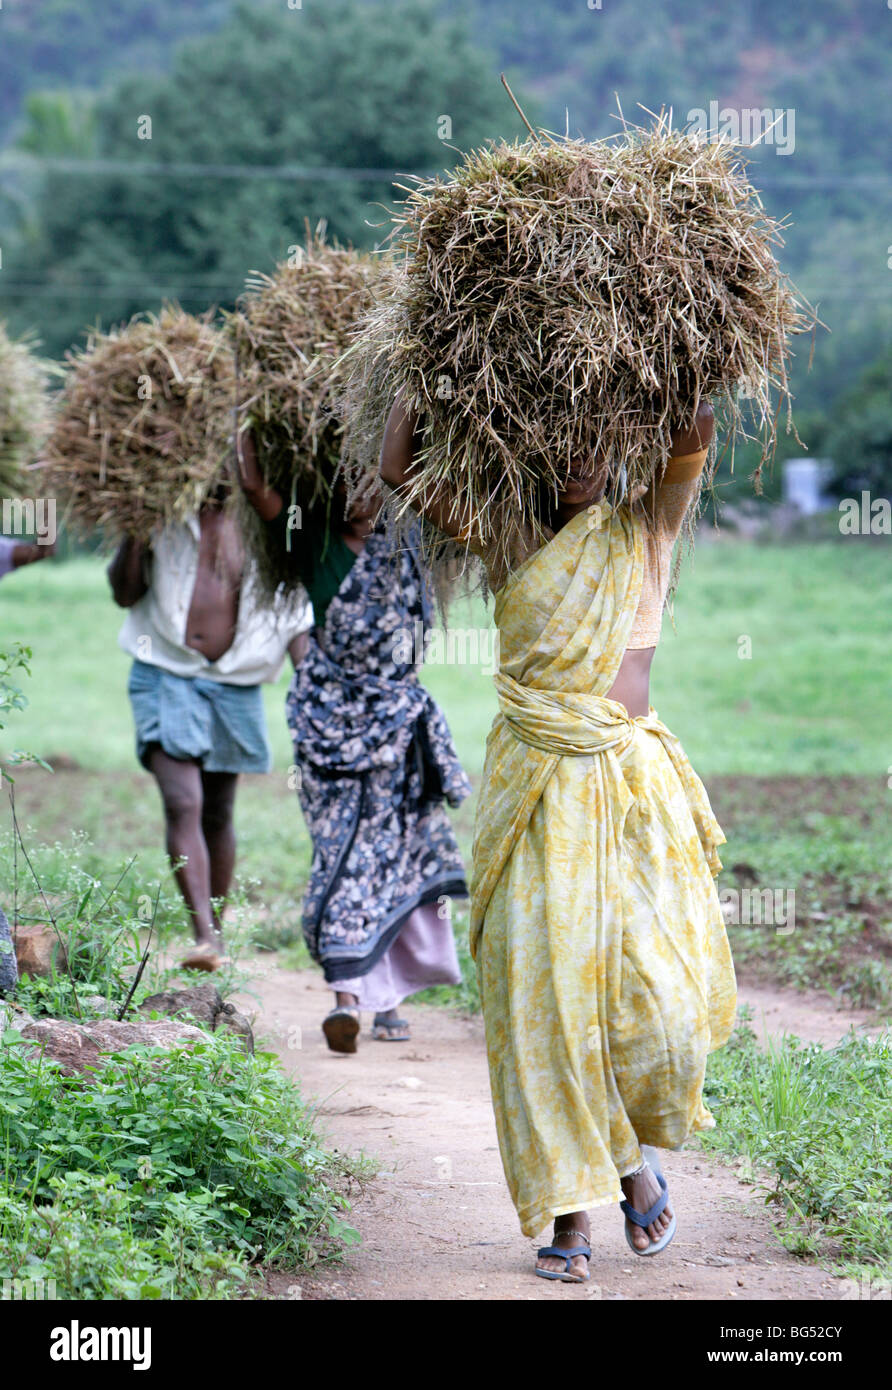 Women carry hay on their heads, Tamil Nadu, India - Stock Image